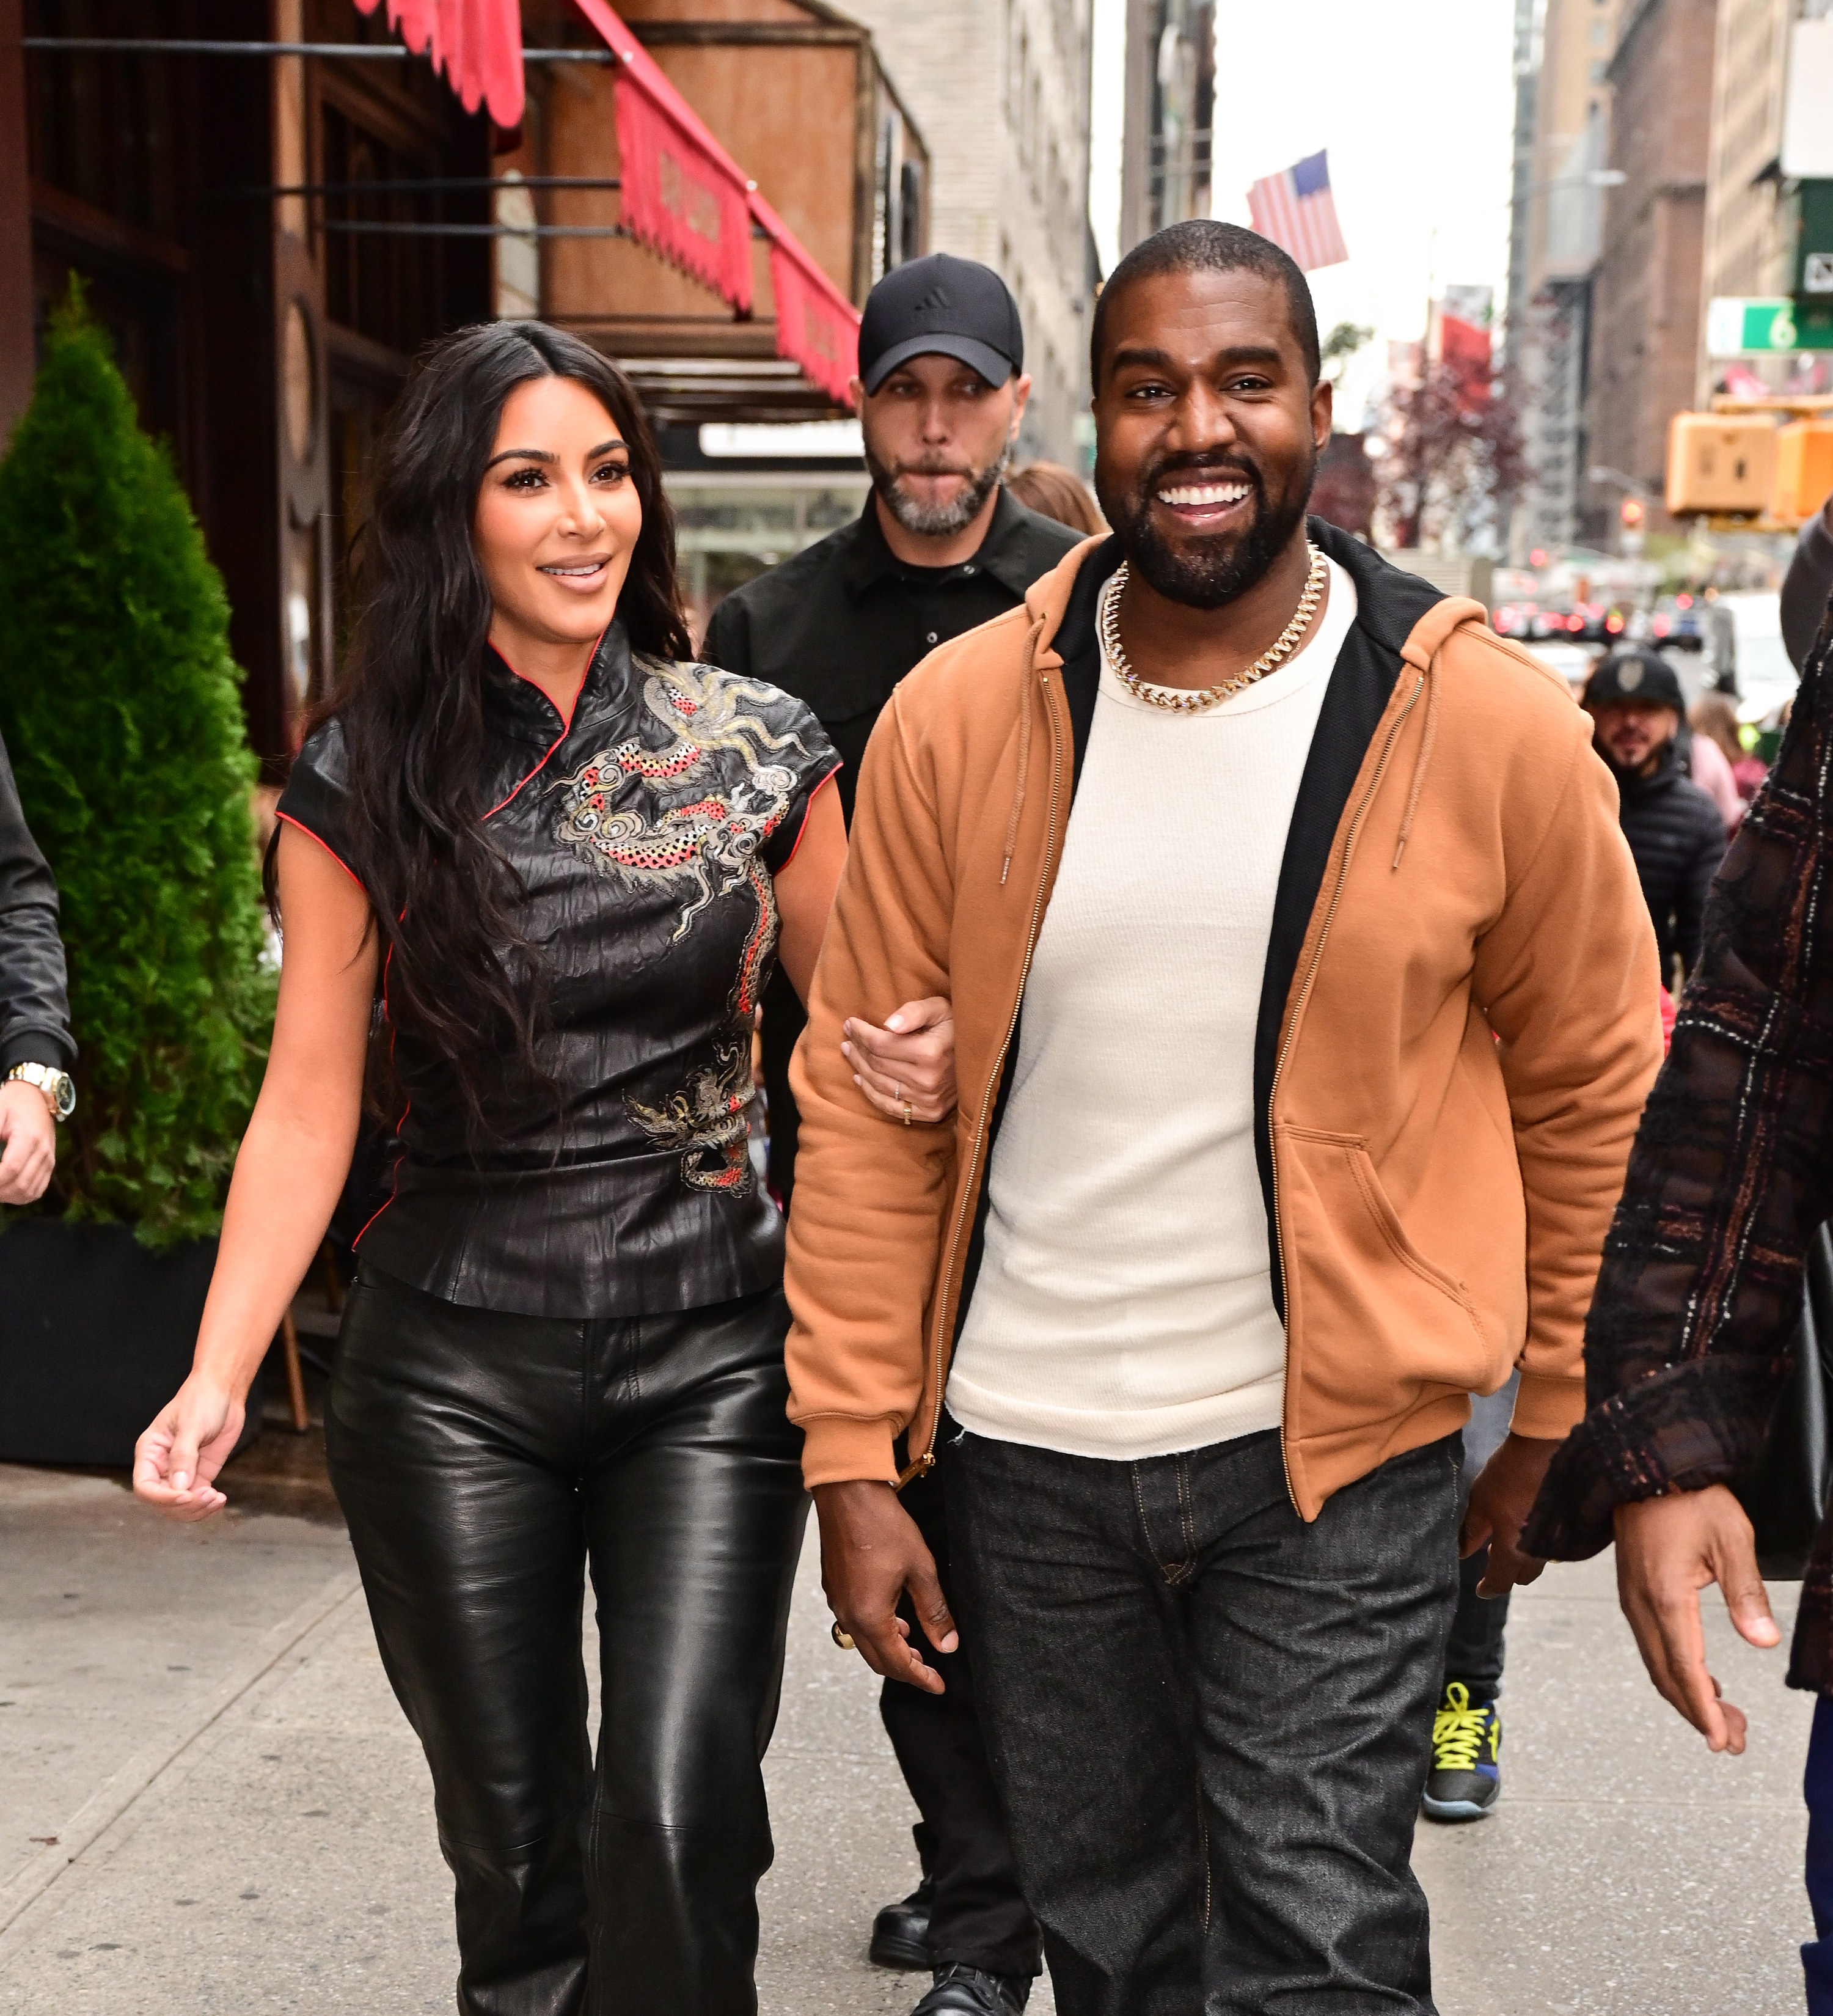 Kim Kardashian West and Kanye West walk along 57th Street on October 25, 2019 in New York City